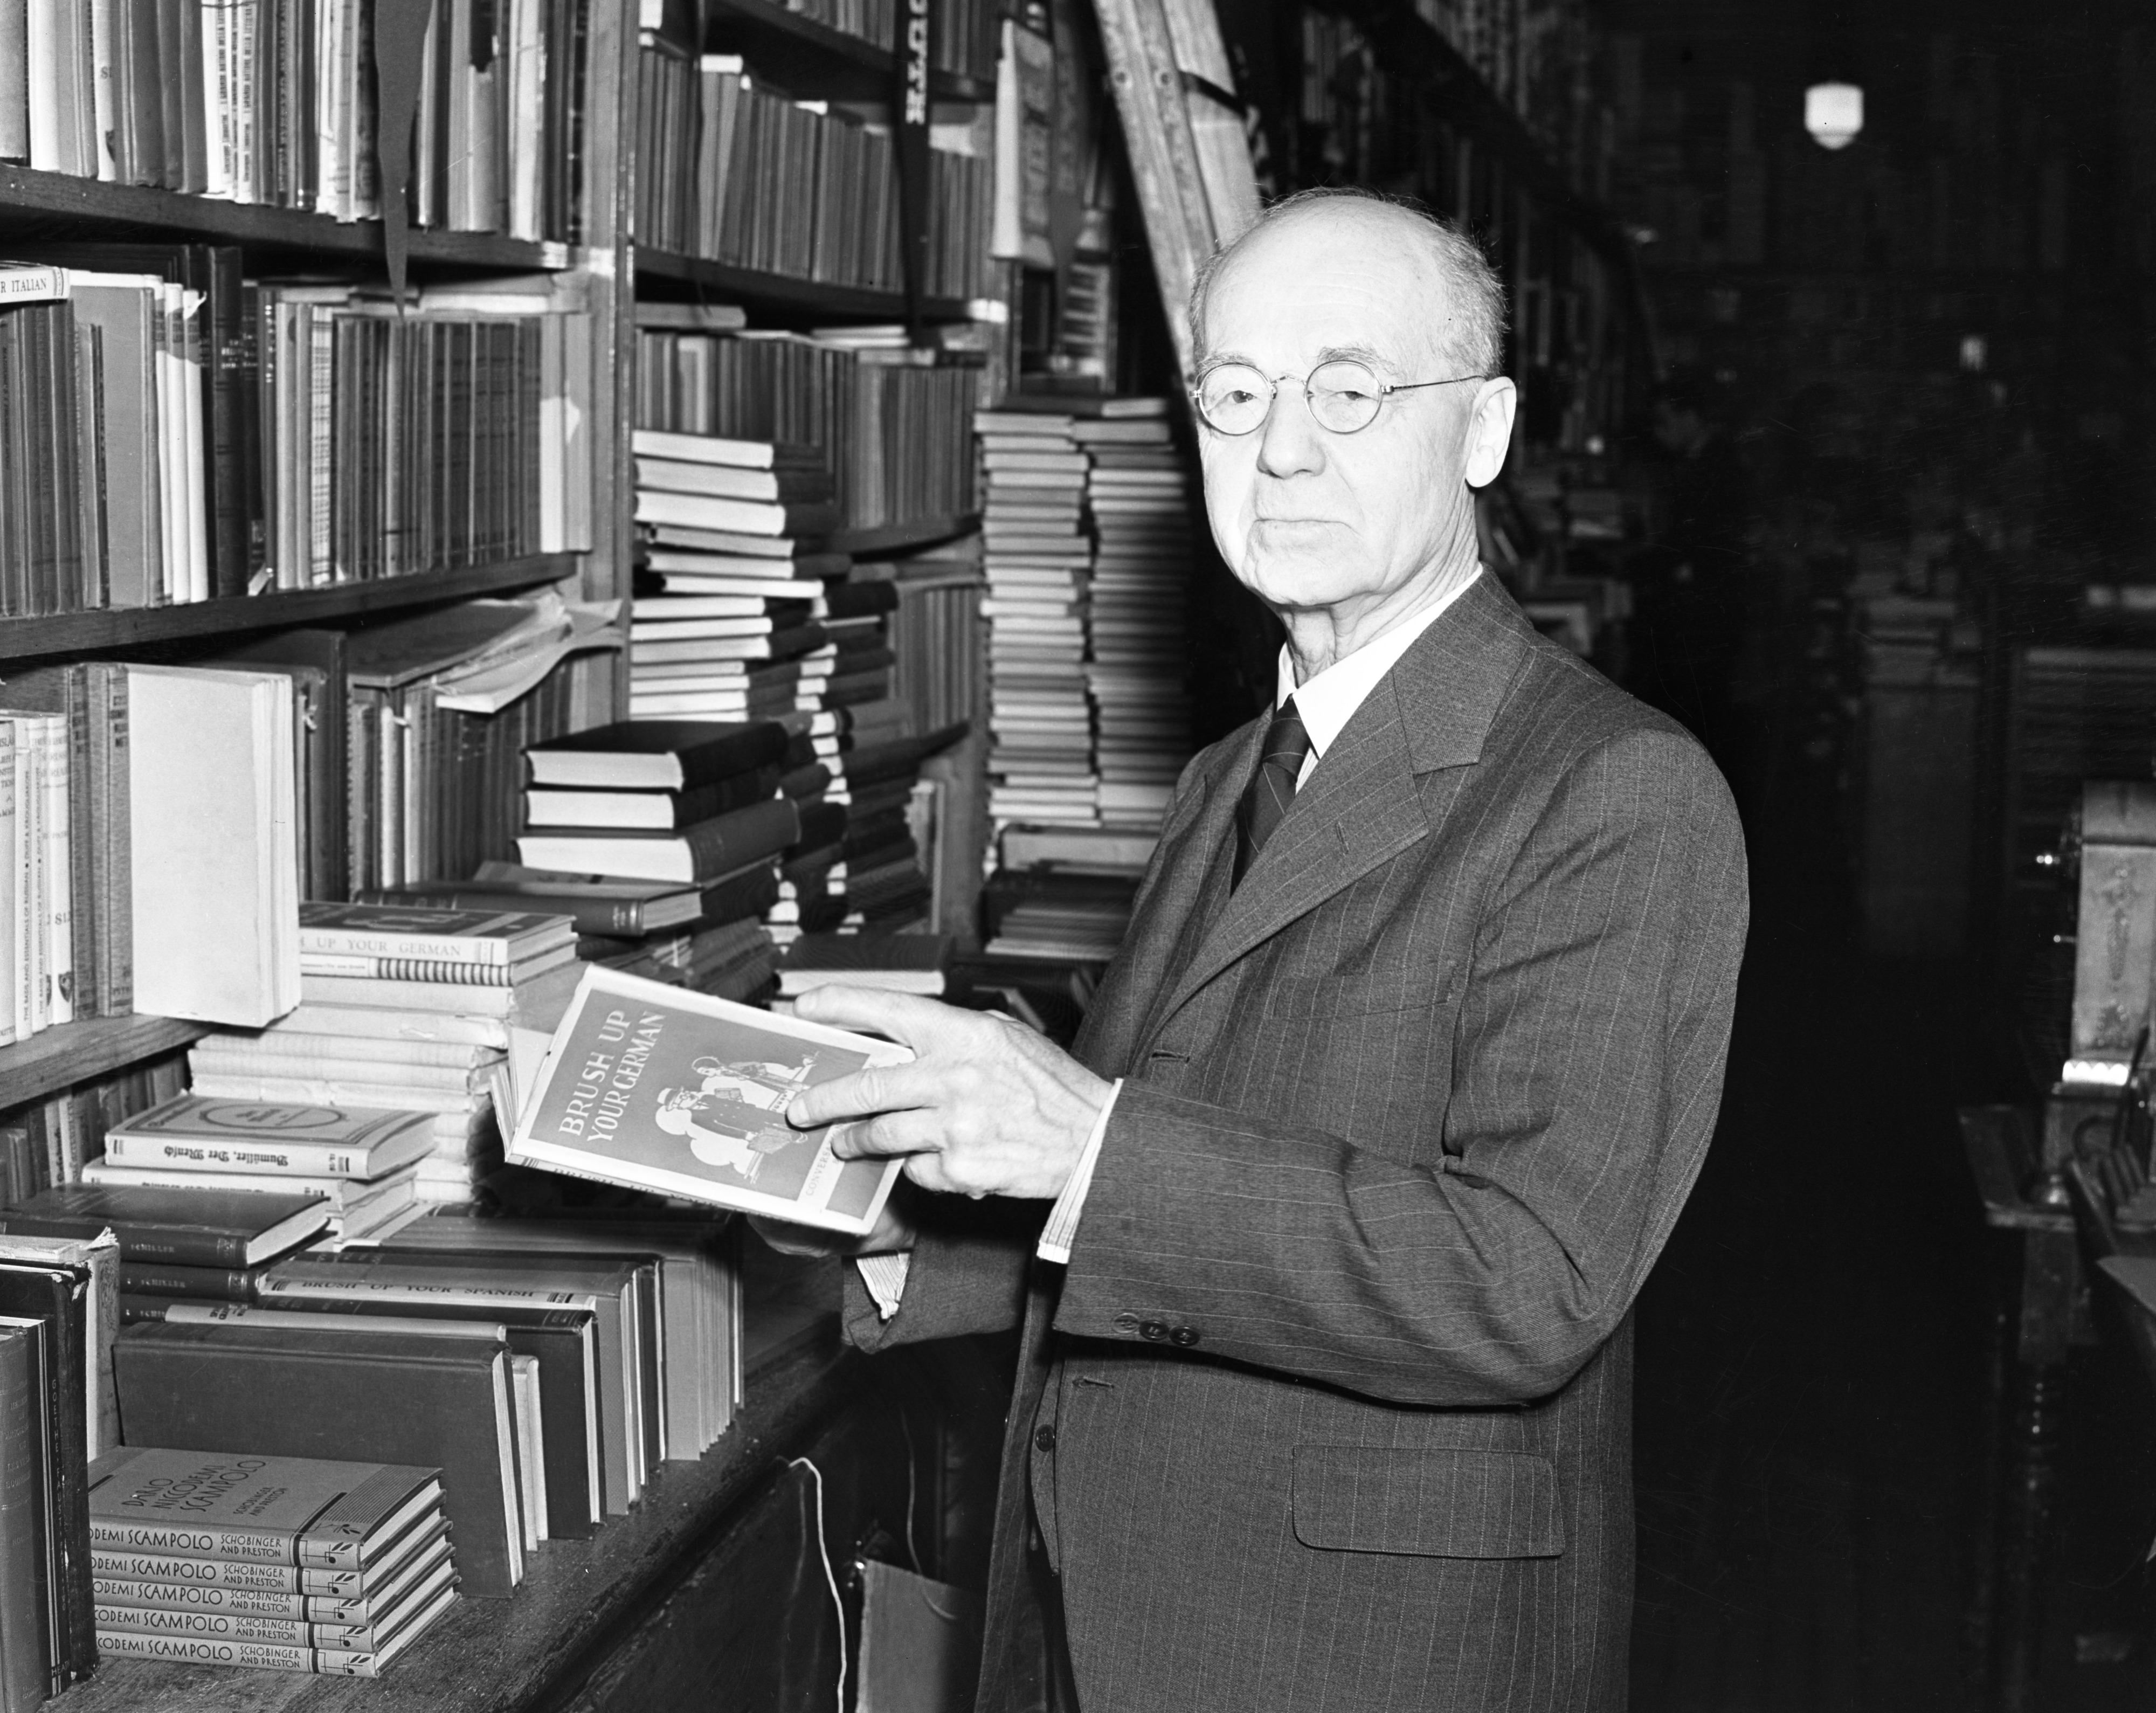 John A. Schlee, Wahr's Bookstore, June 1938 image